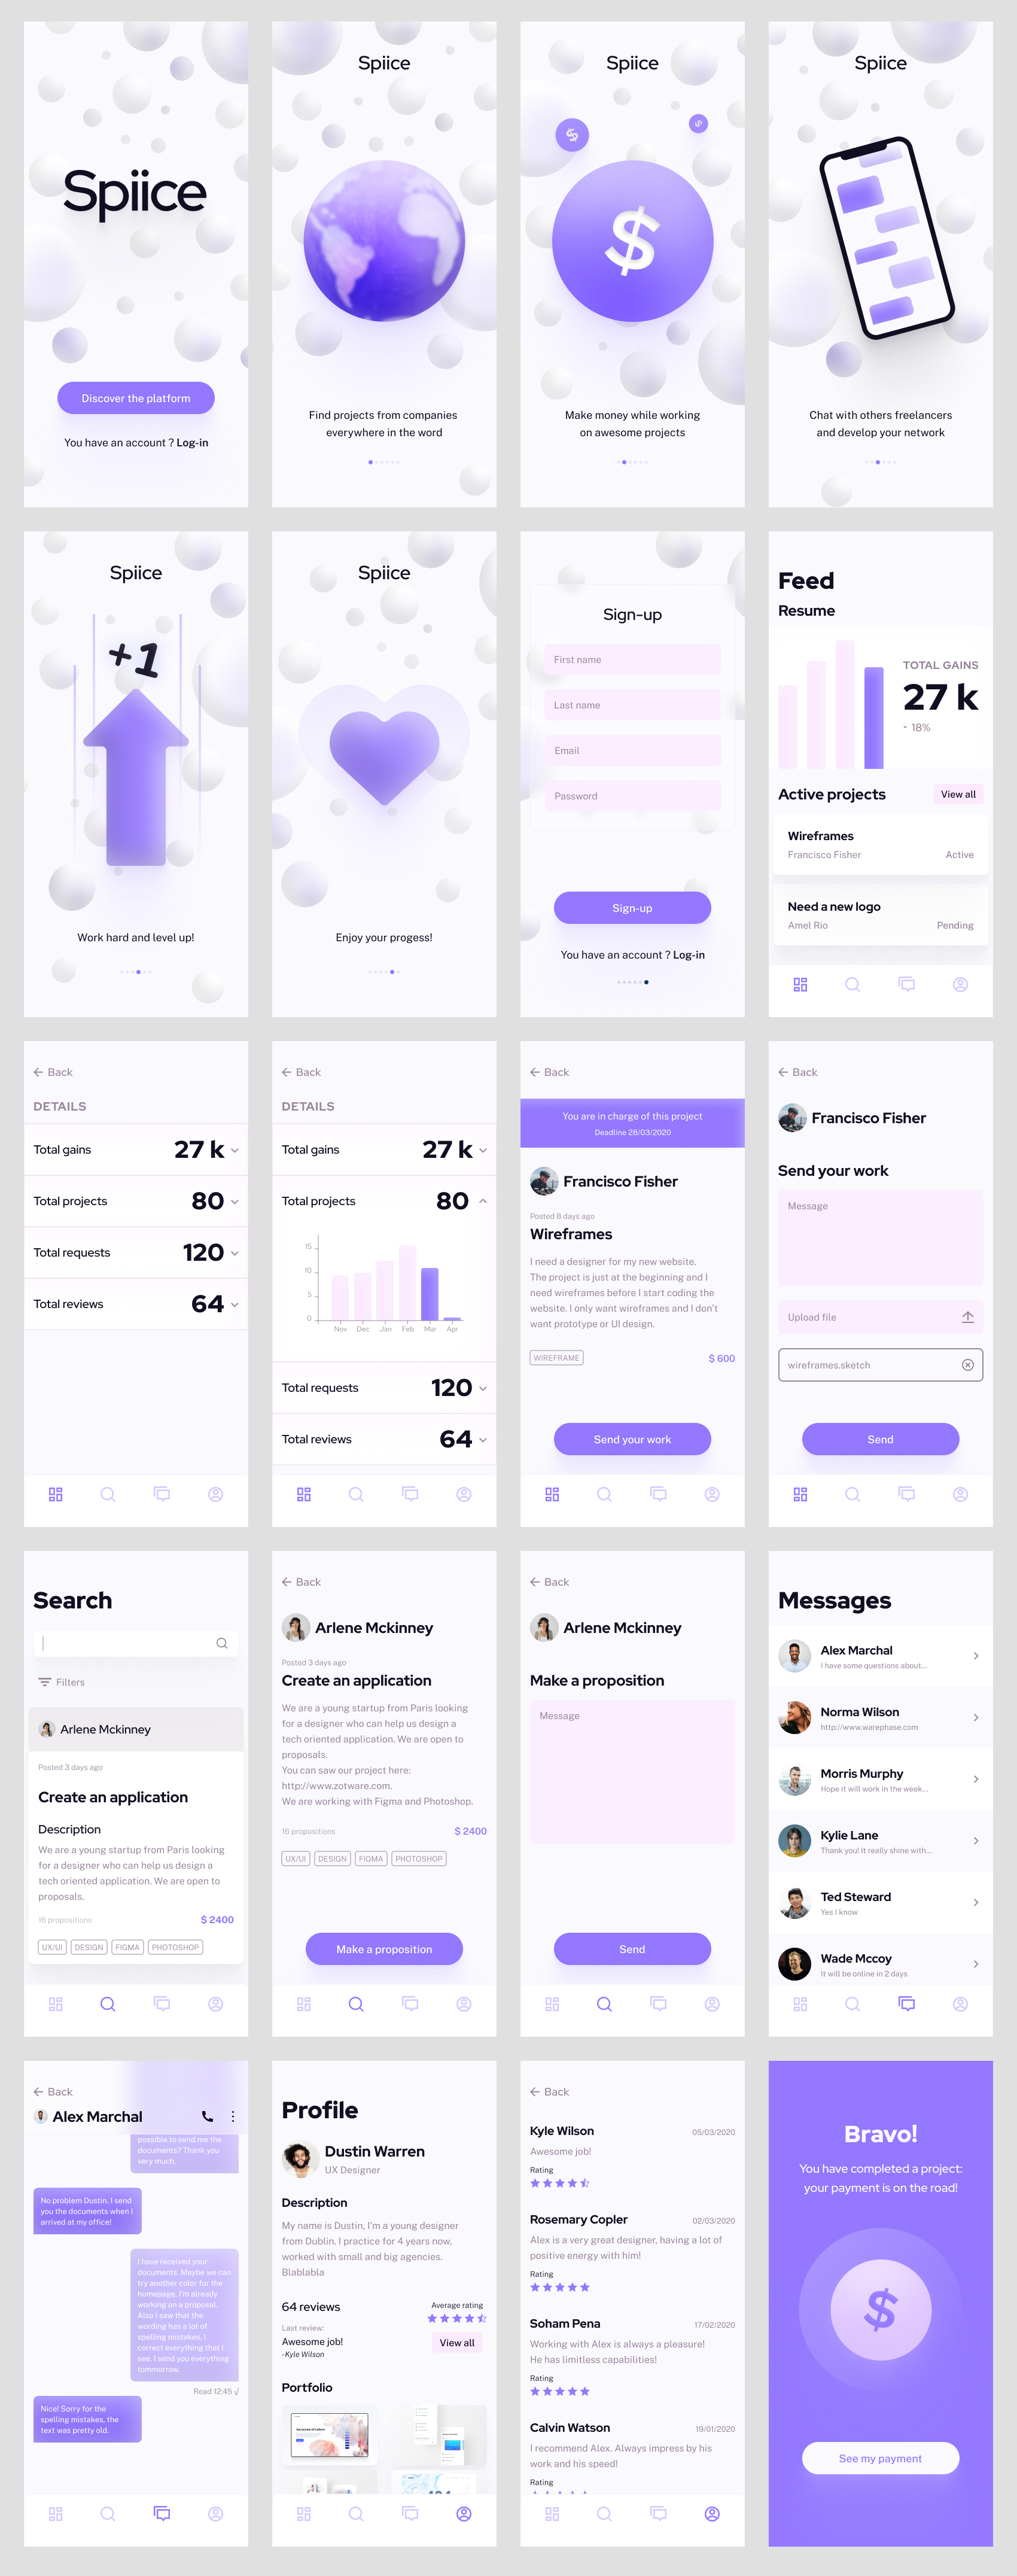 Freelance Platform UI Kit for Figma - A free UI kit composed of 20 screens in total with 5 exclusive illustrations. It's free for personal work.